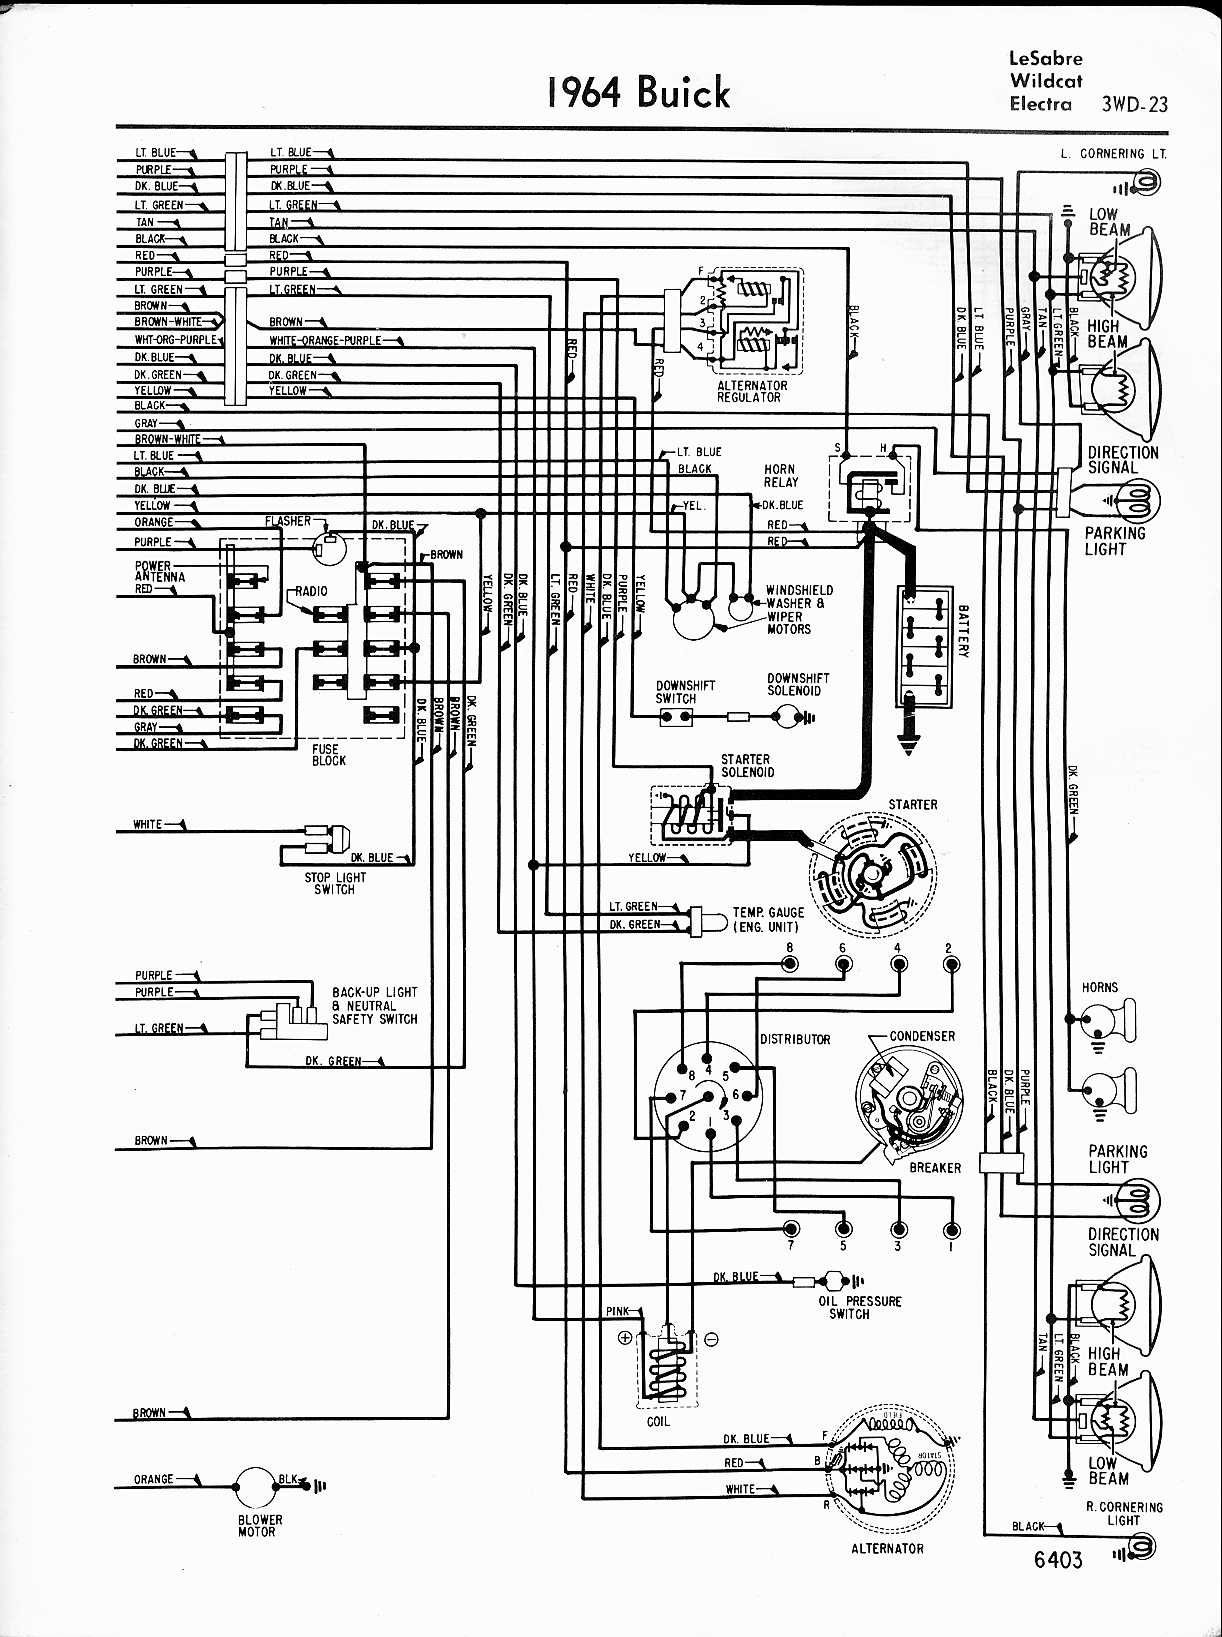 wiring diagram in addition 2006 bmw 325i fuse box diagram further 2004 Dodge Durango Fuse Diagram 2002 bmw 745li radio wiring diagram wiring library wiring diagram in addition 2006 bmw 325i fuse box diagram further bmw